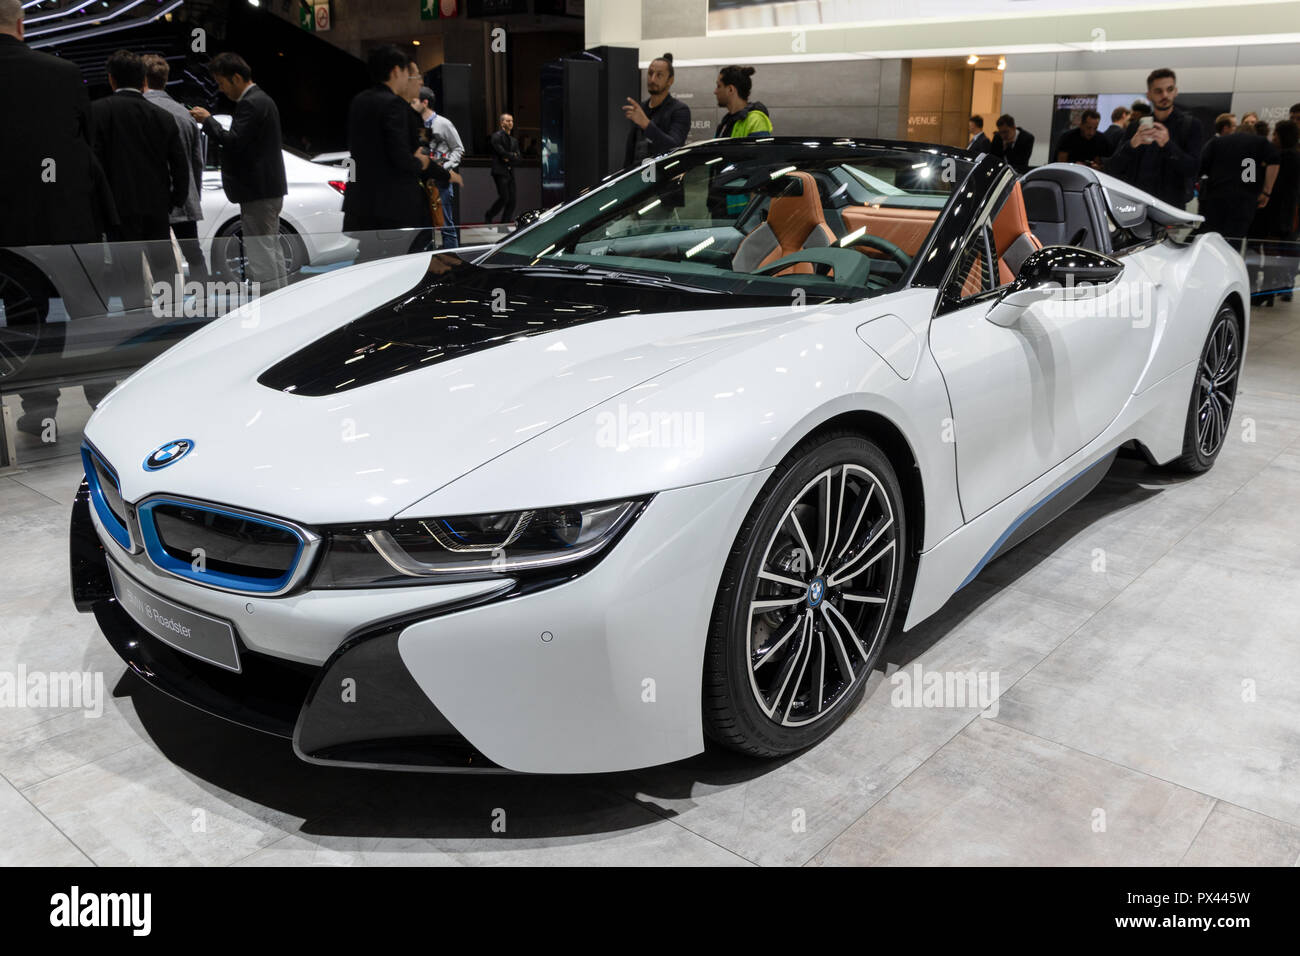 Paris Oct 2 2018 Bmw I8 Roadster Electric Sports Car Showcased